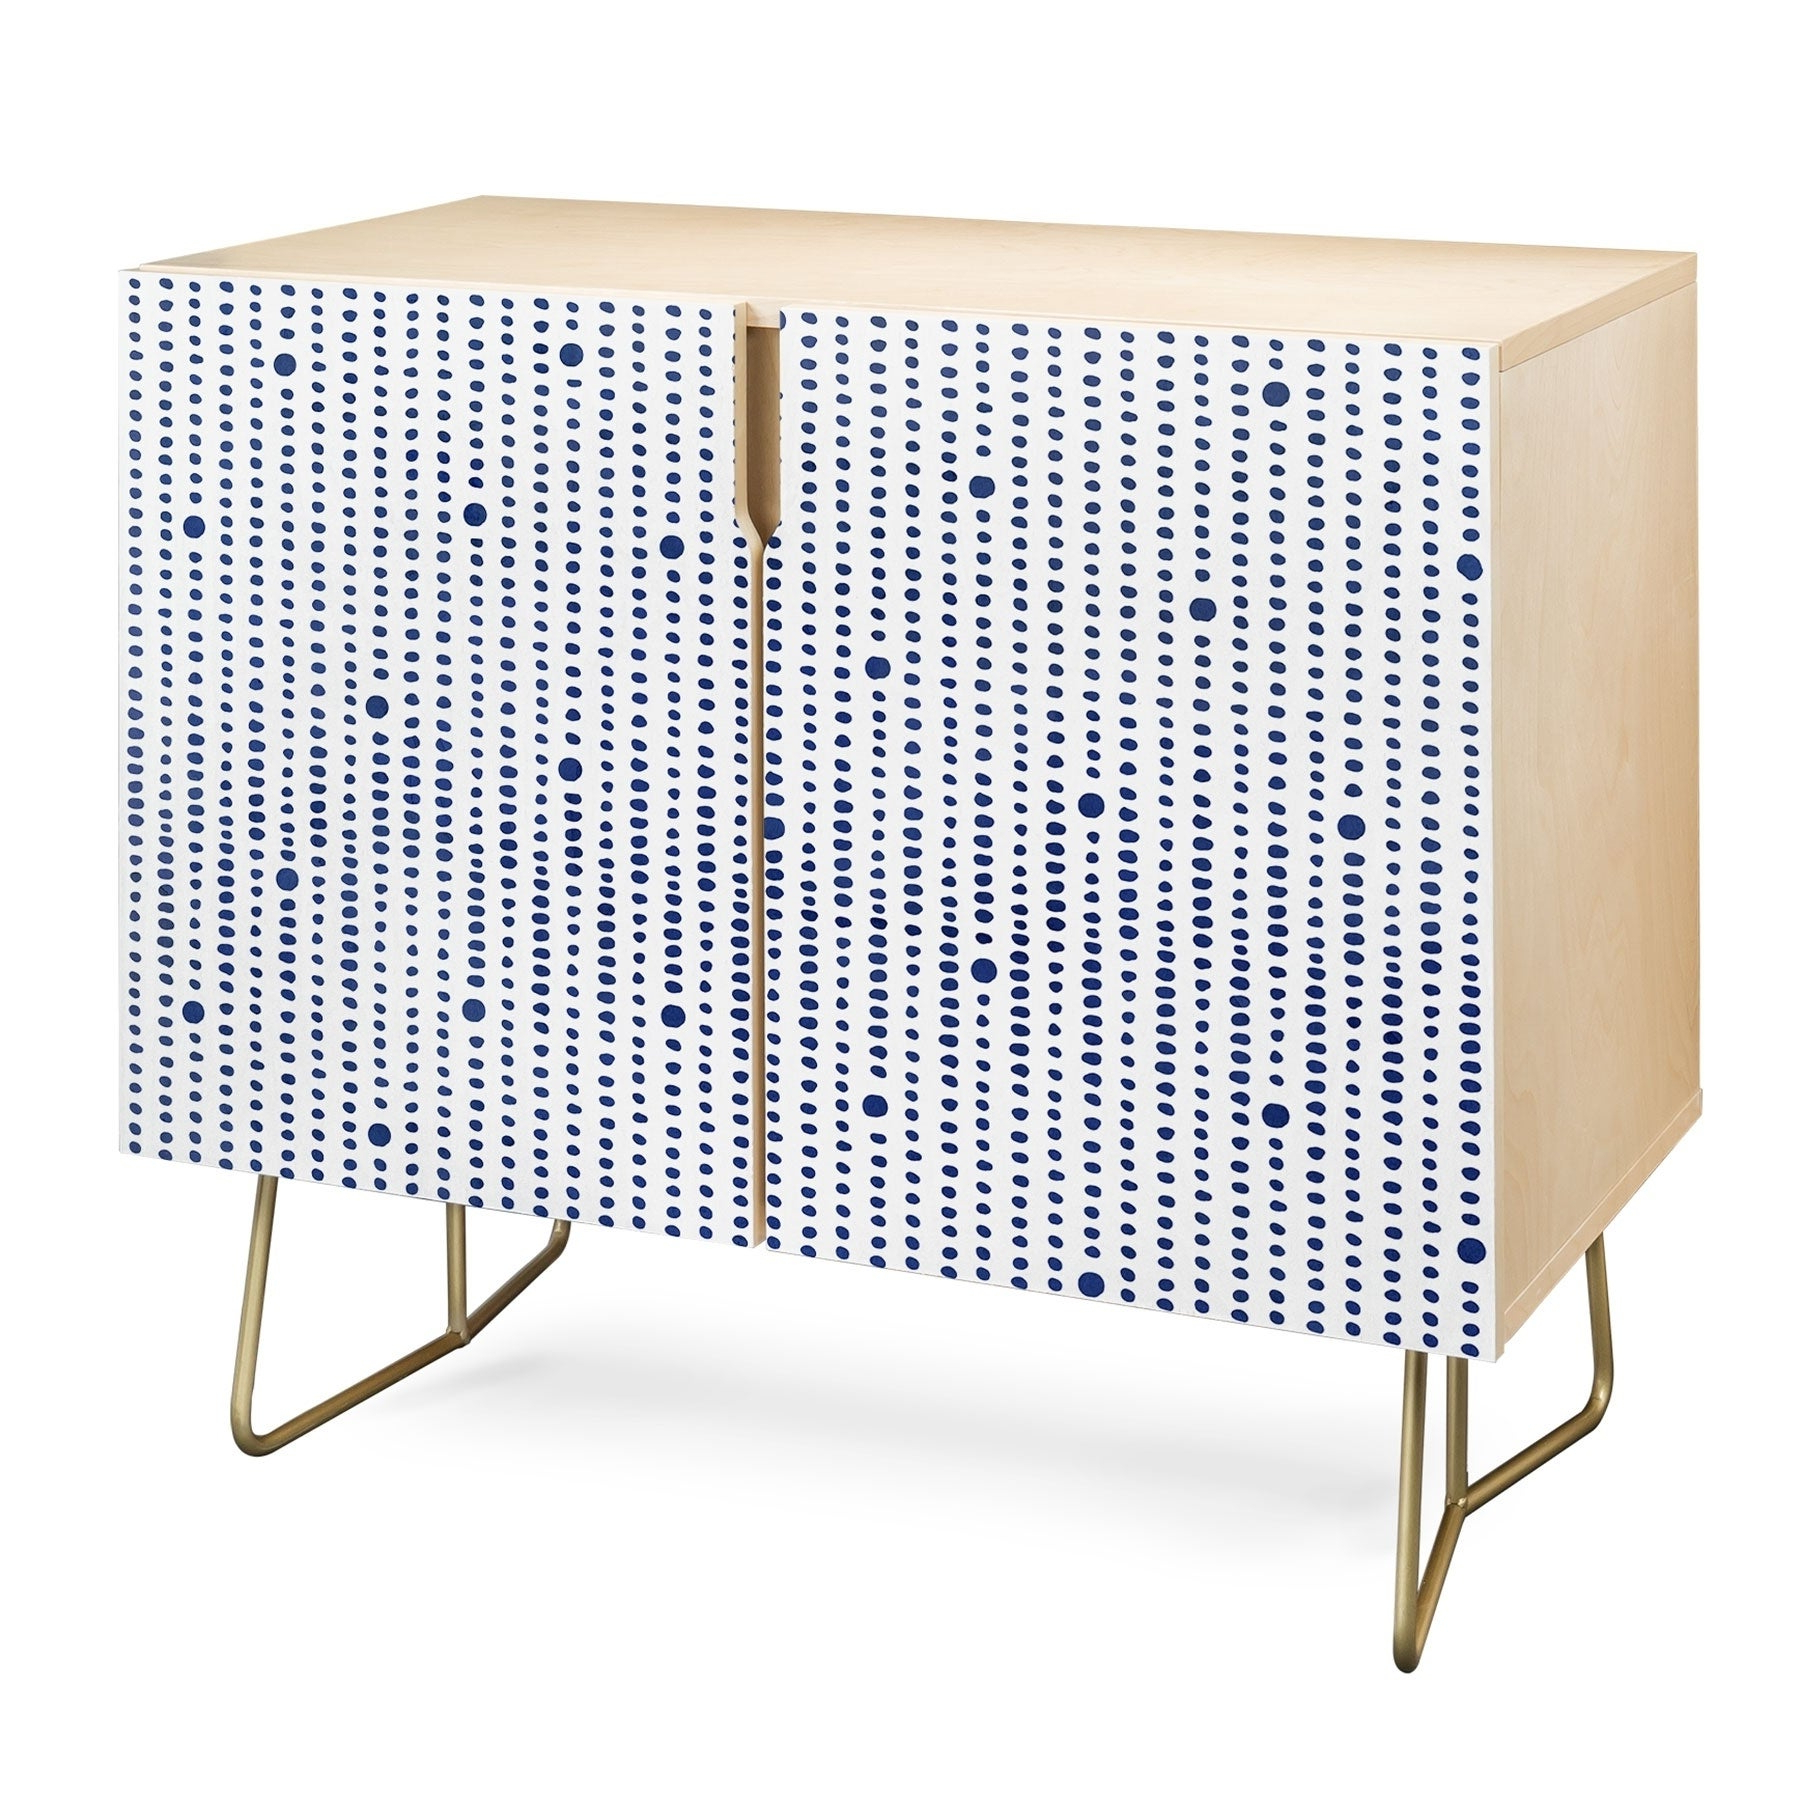 Deny Designs Japandi Style Credenza (Birch Or Walnut, 2 Leg Options) For Strokes And Waves Credenzas (View 6 of 20)